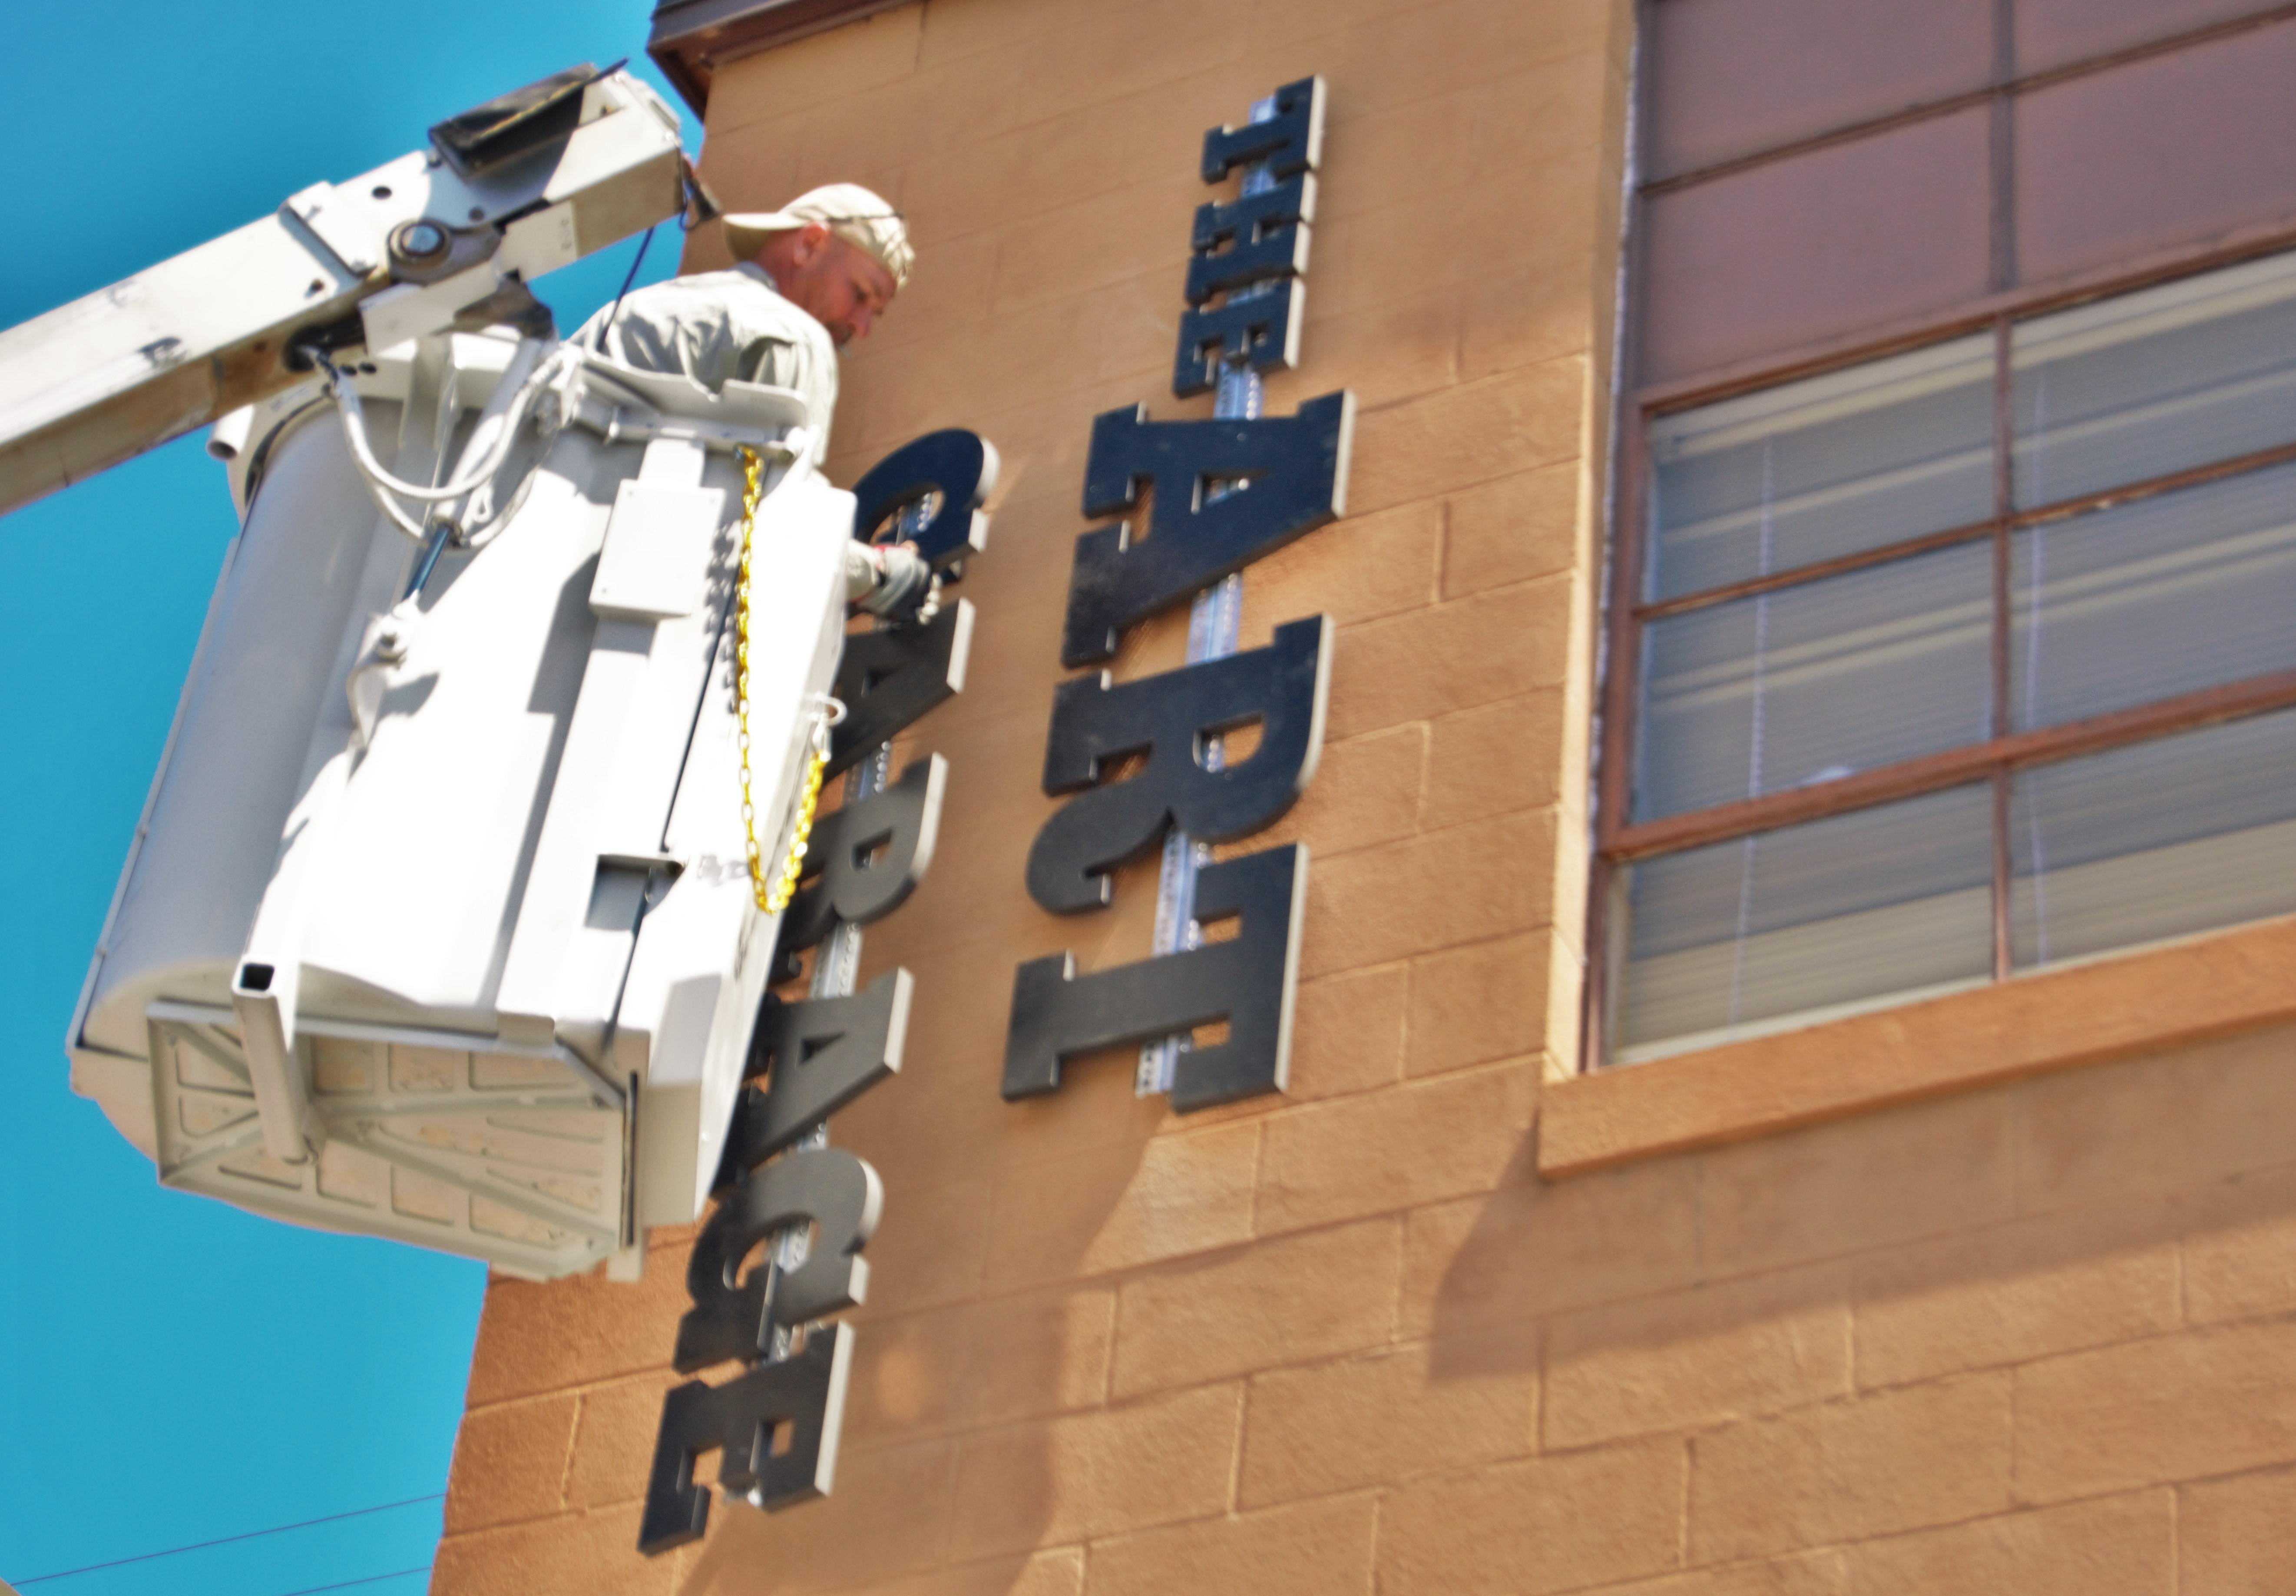 Workers put the finishing touches on the new sign at The Art Garage at Saint Francis